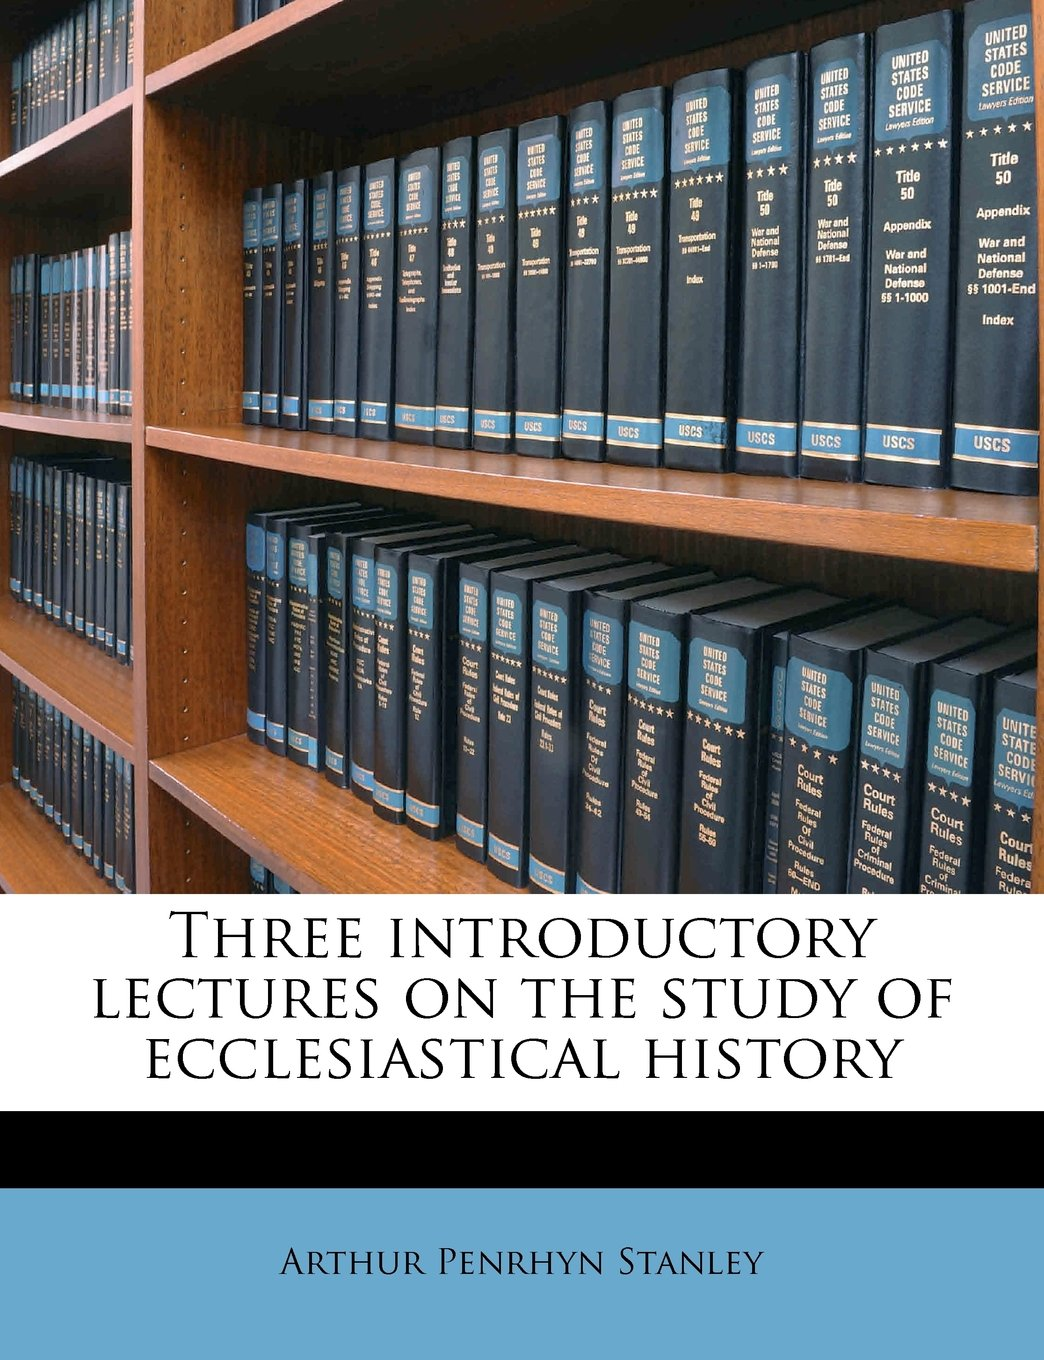 Download Three introductory lectures on the study of ecclesiastical history ebook